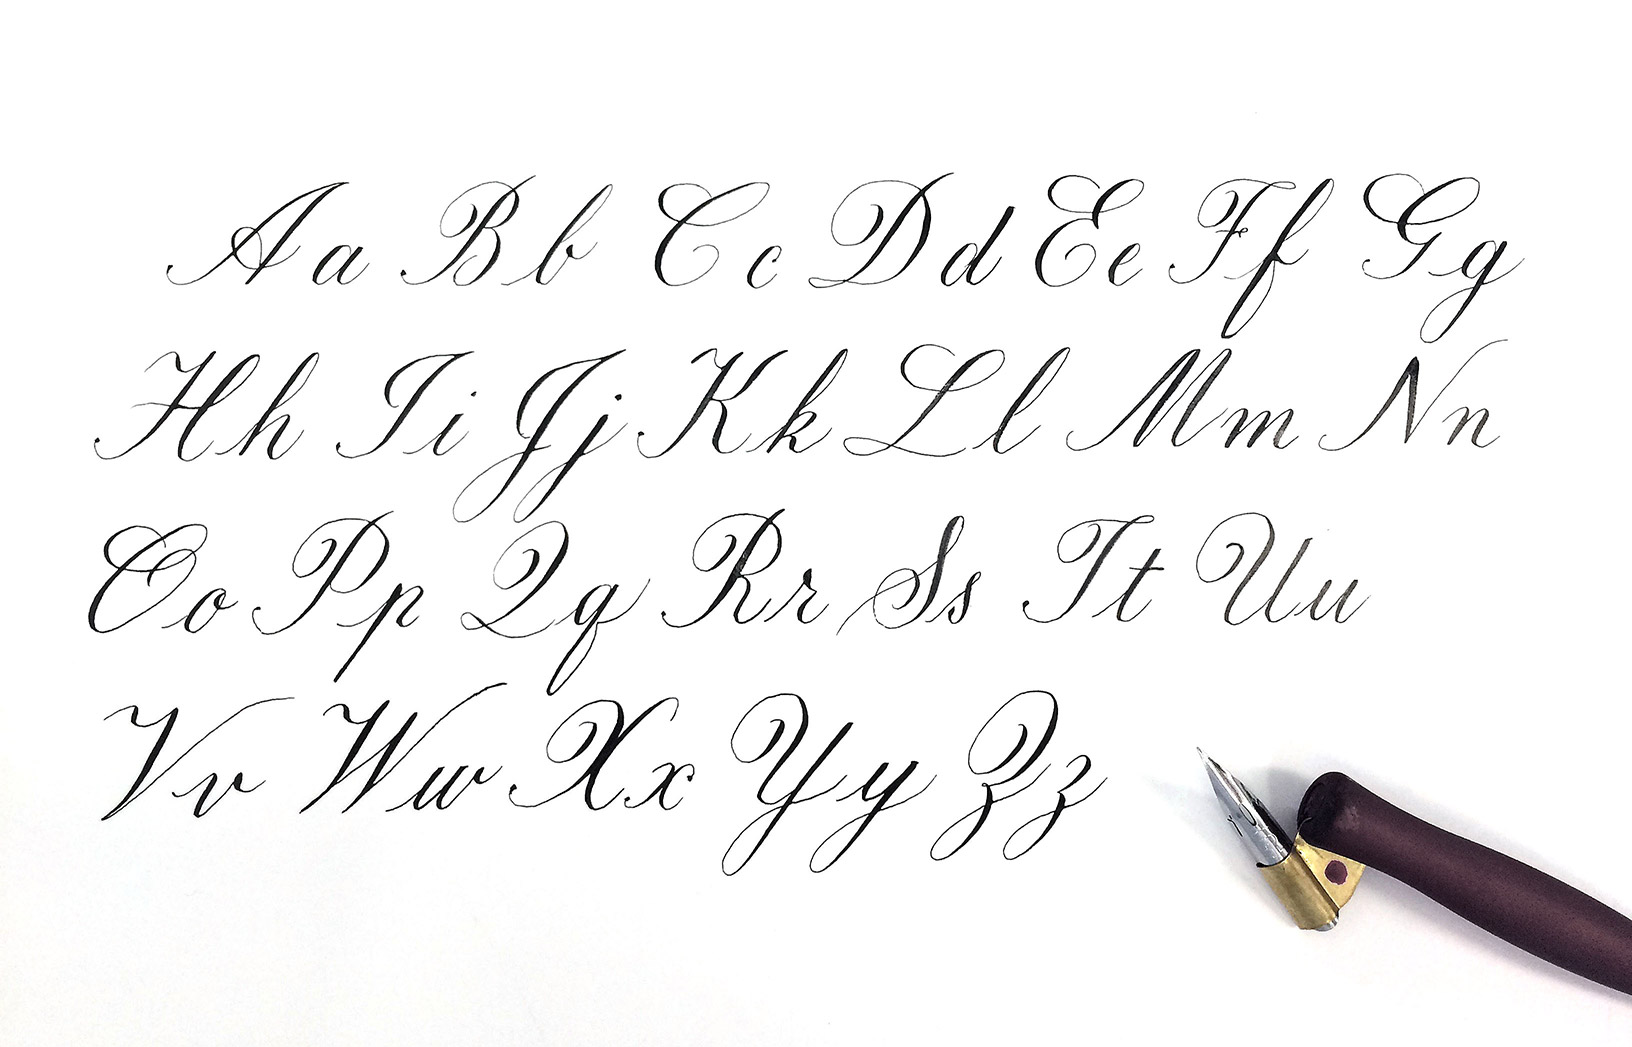 graphic about Copperplate Calligraphy Alphabet Printable called A simple heritage of Copperplate Calligraphy Typerie